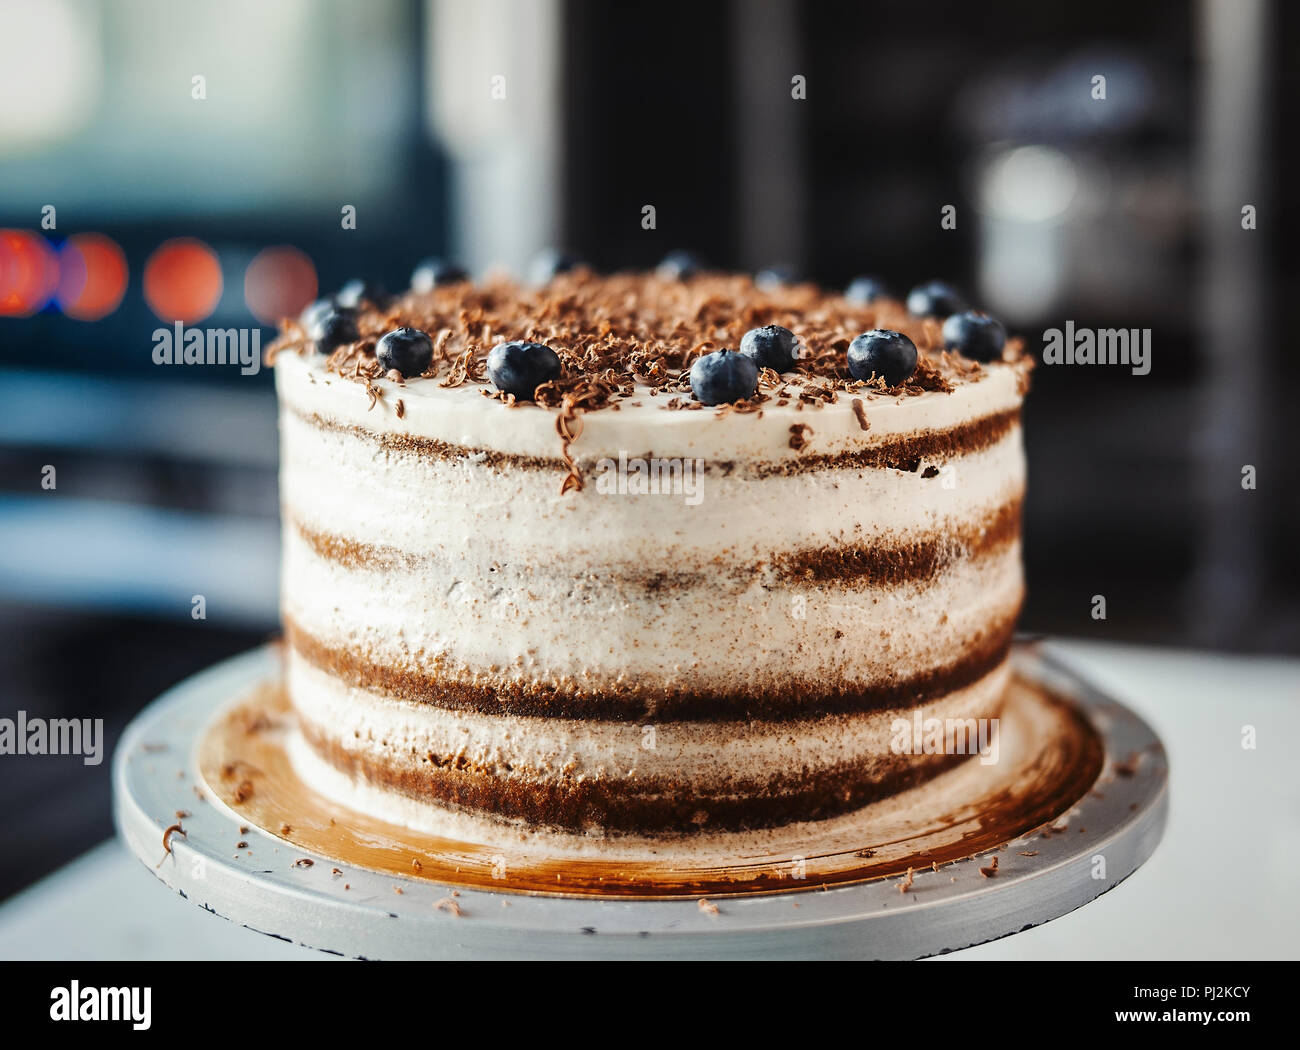 Close up of chocolate cake with cream cheese and berries. - Stock Image